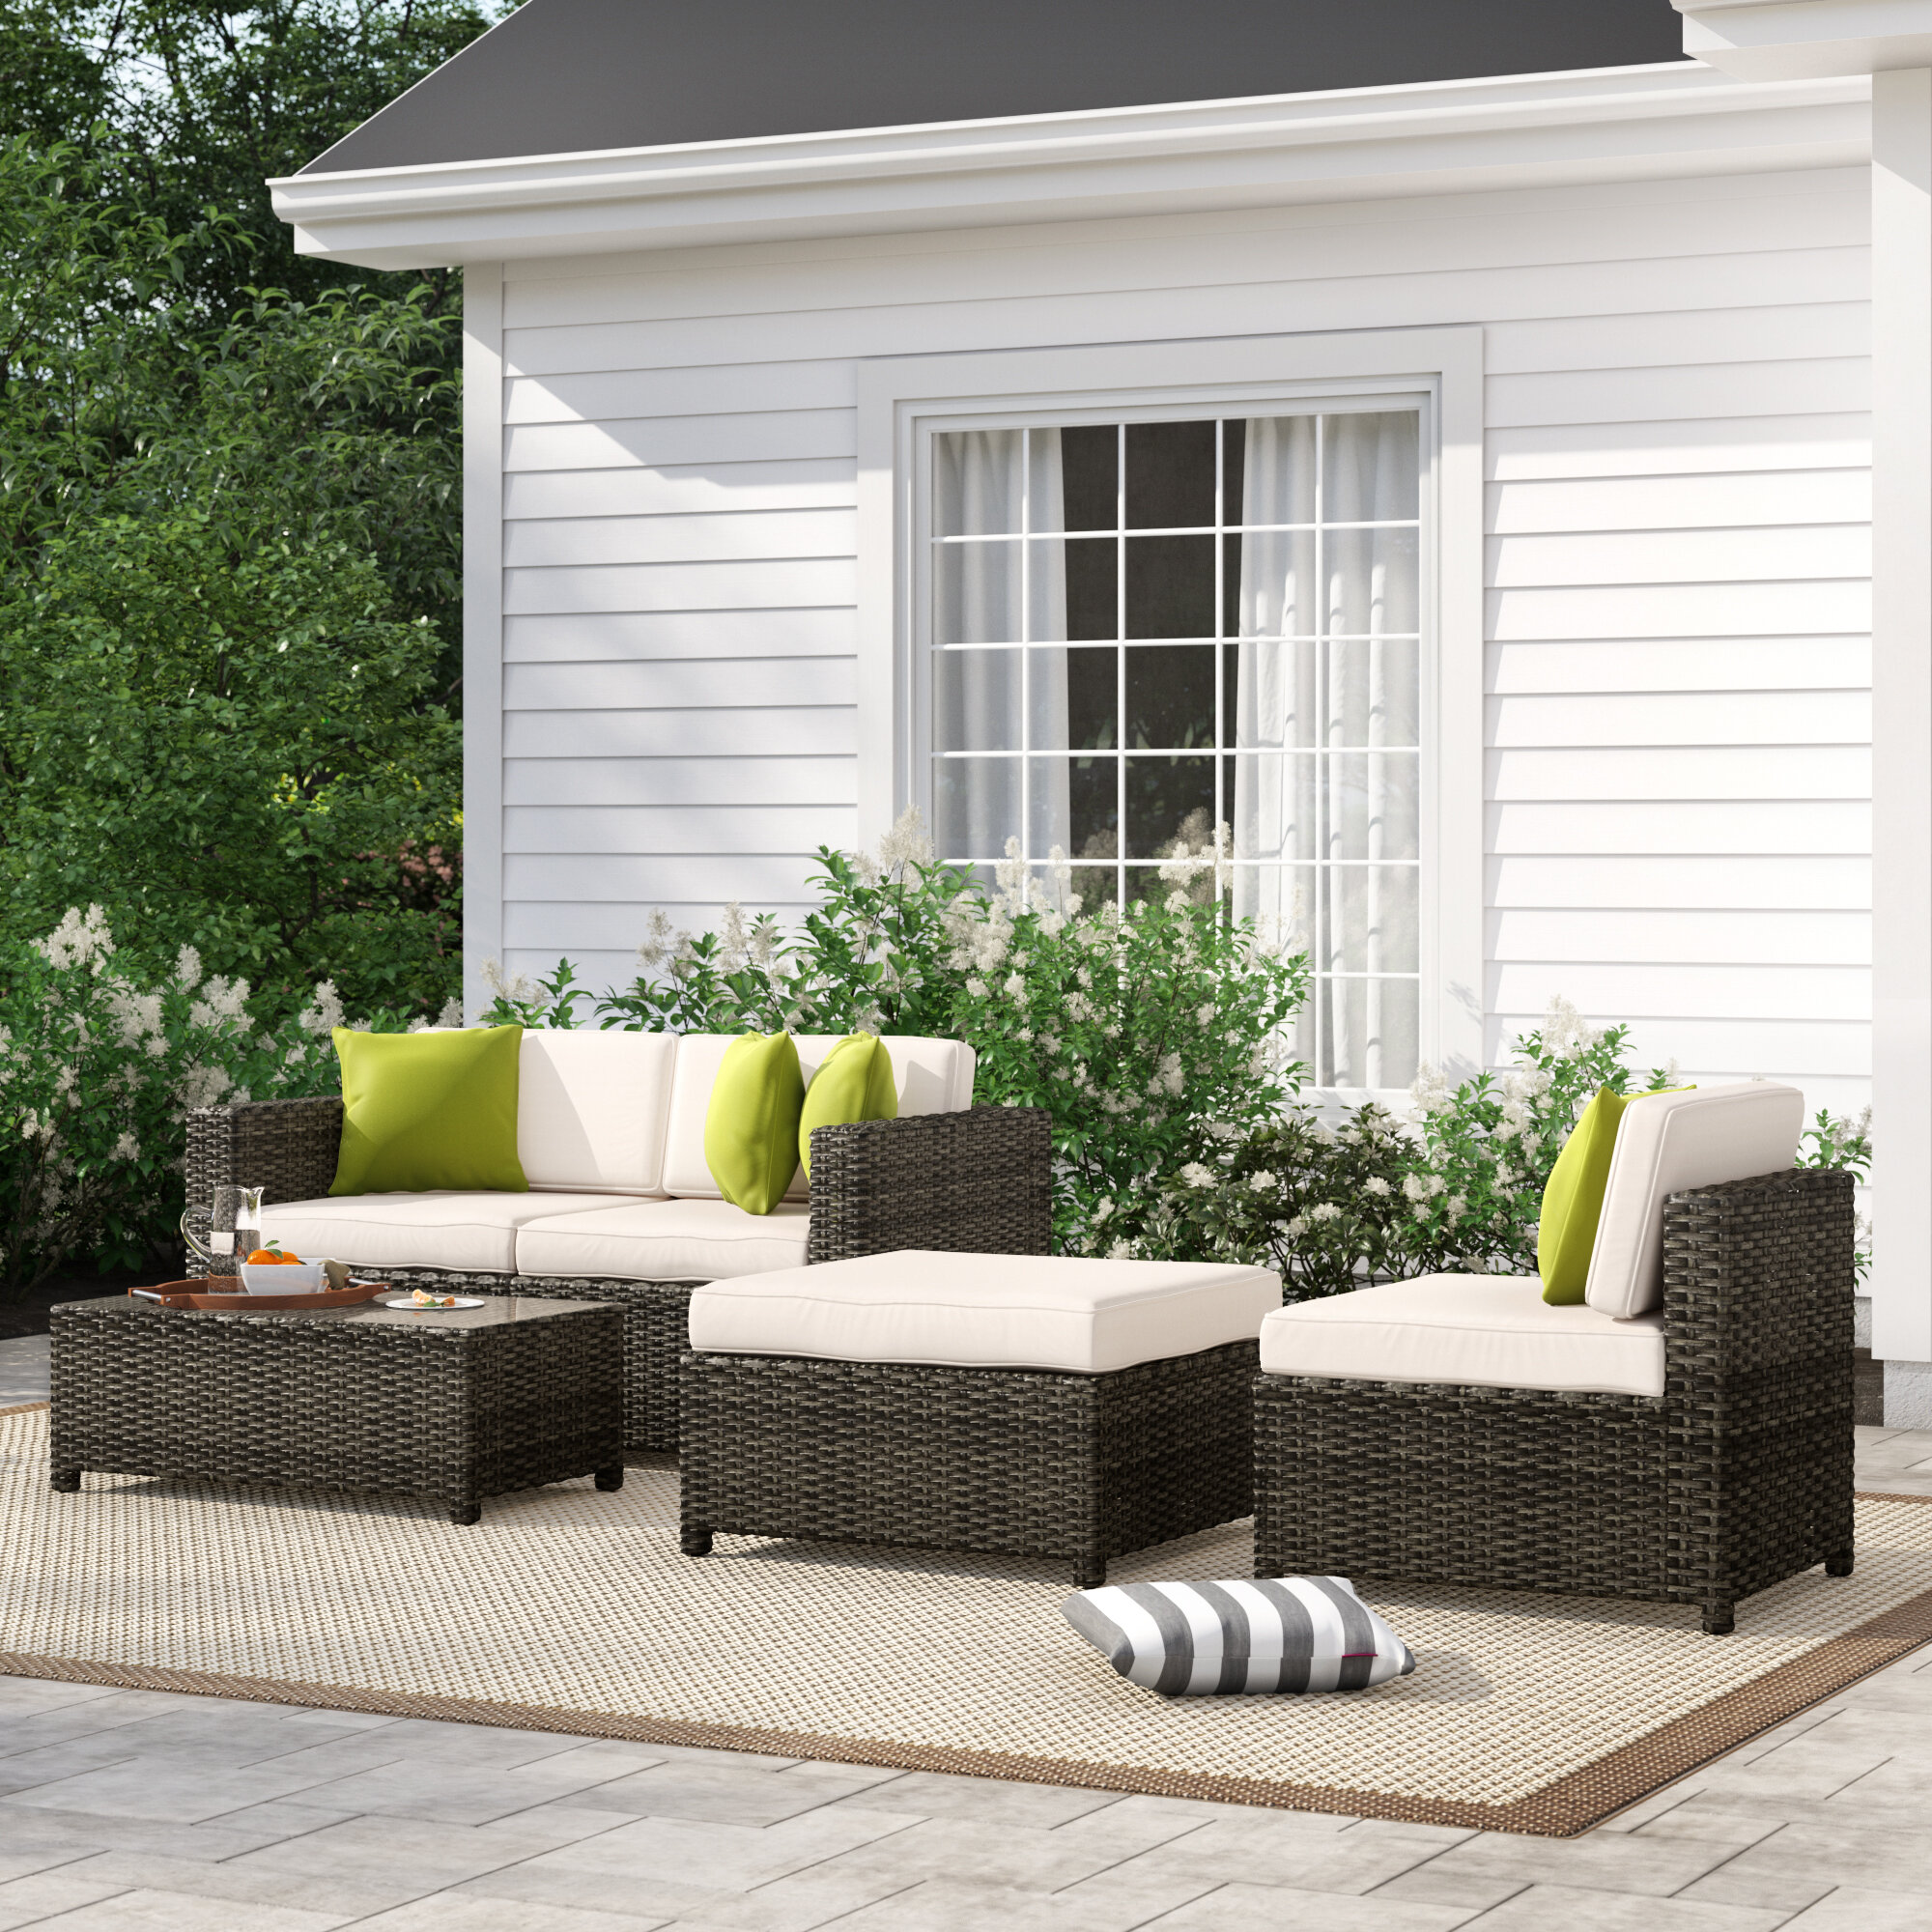 Sol 72 Outdoor Carmelo 5 Piece Rattan Sectional Seating Group With Cushions Reviews Wayfair